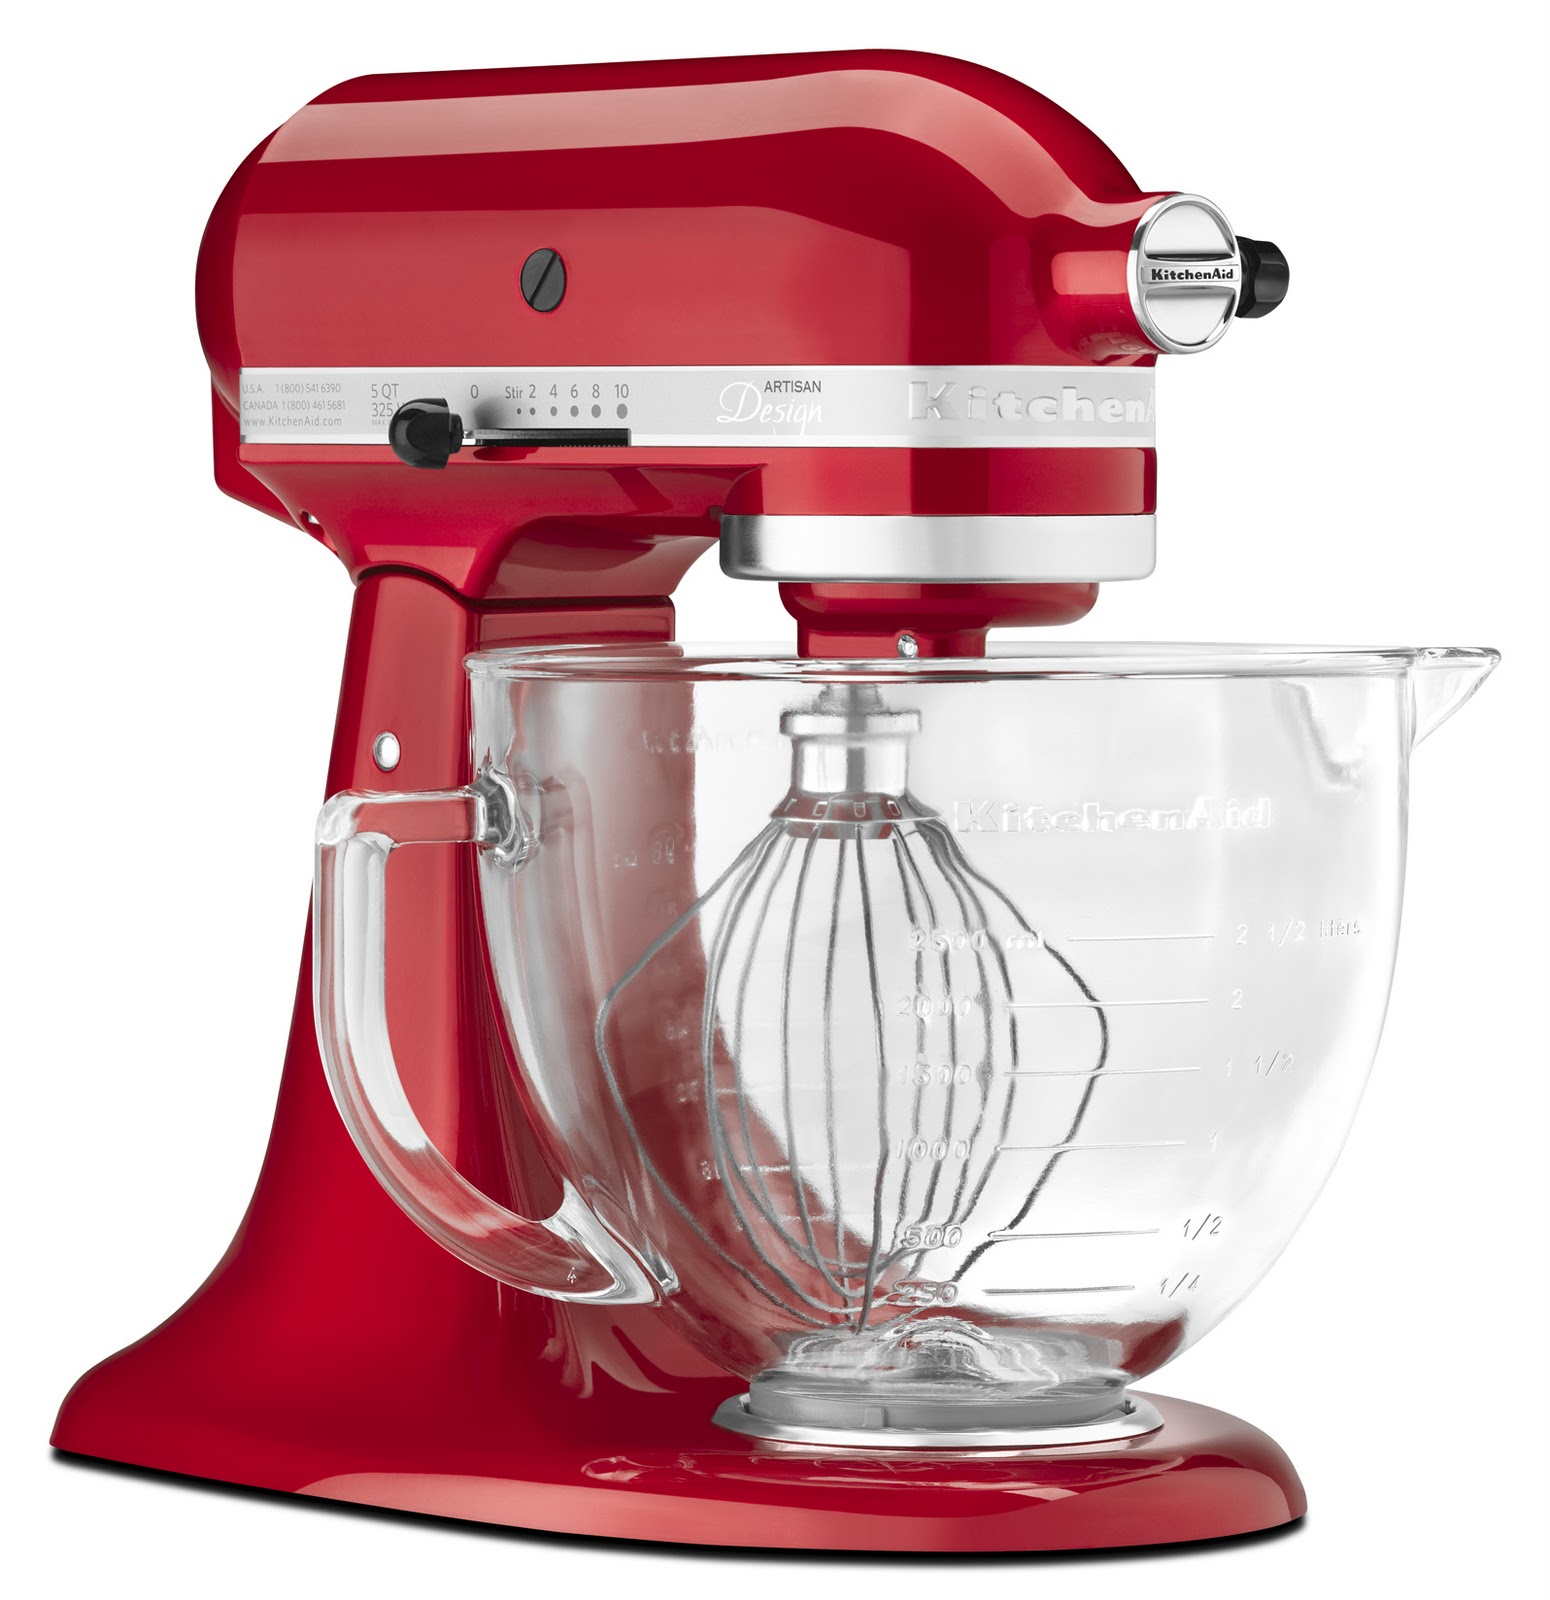 Kitchenaid mixer bowl photo - 1